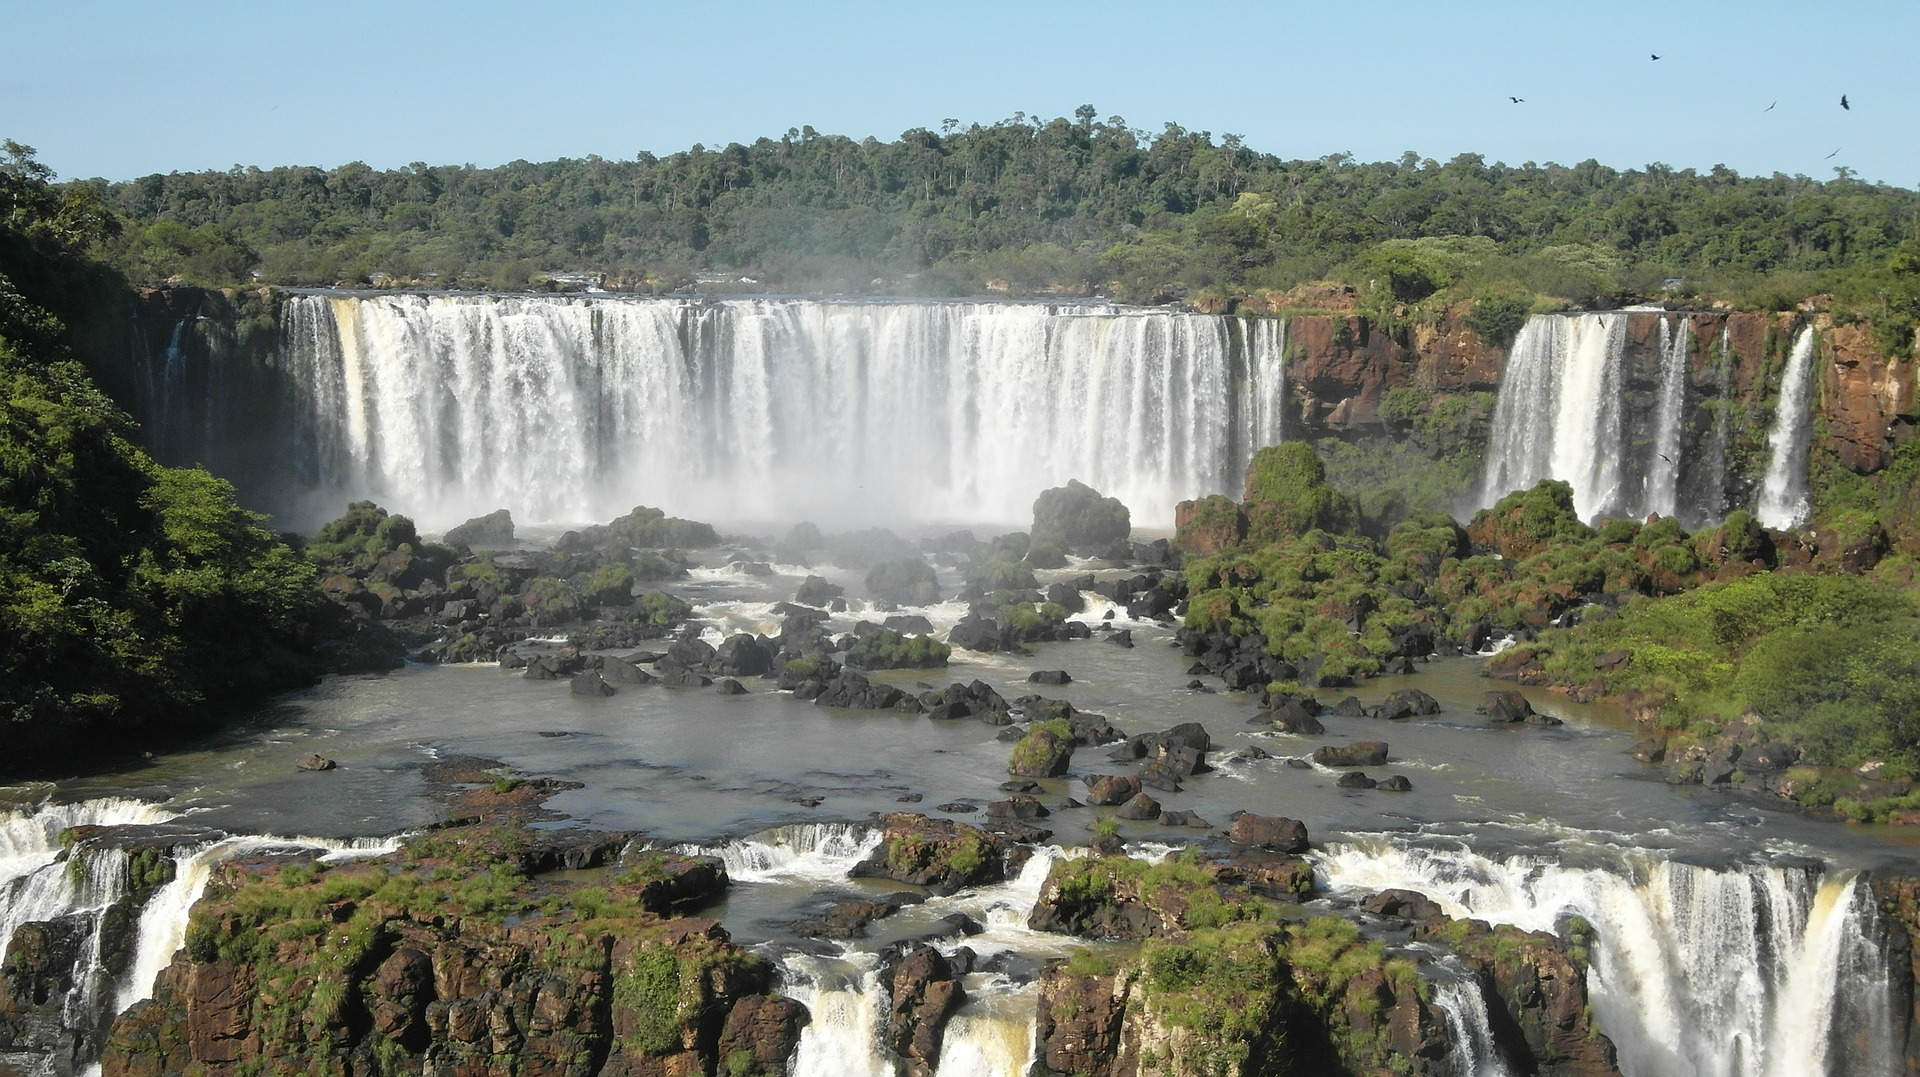 foz-do-iguacu-221274_1920